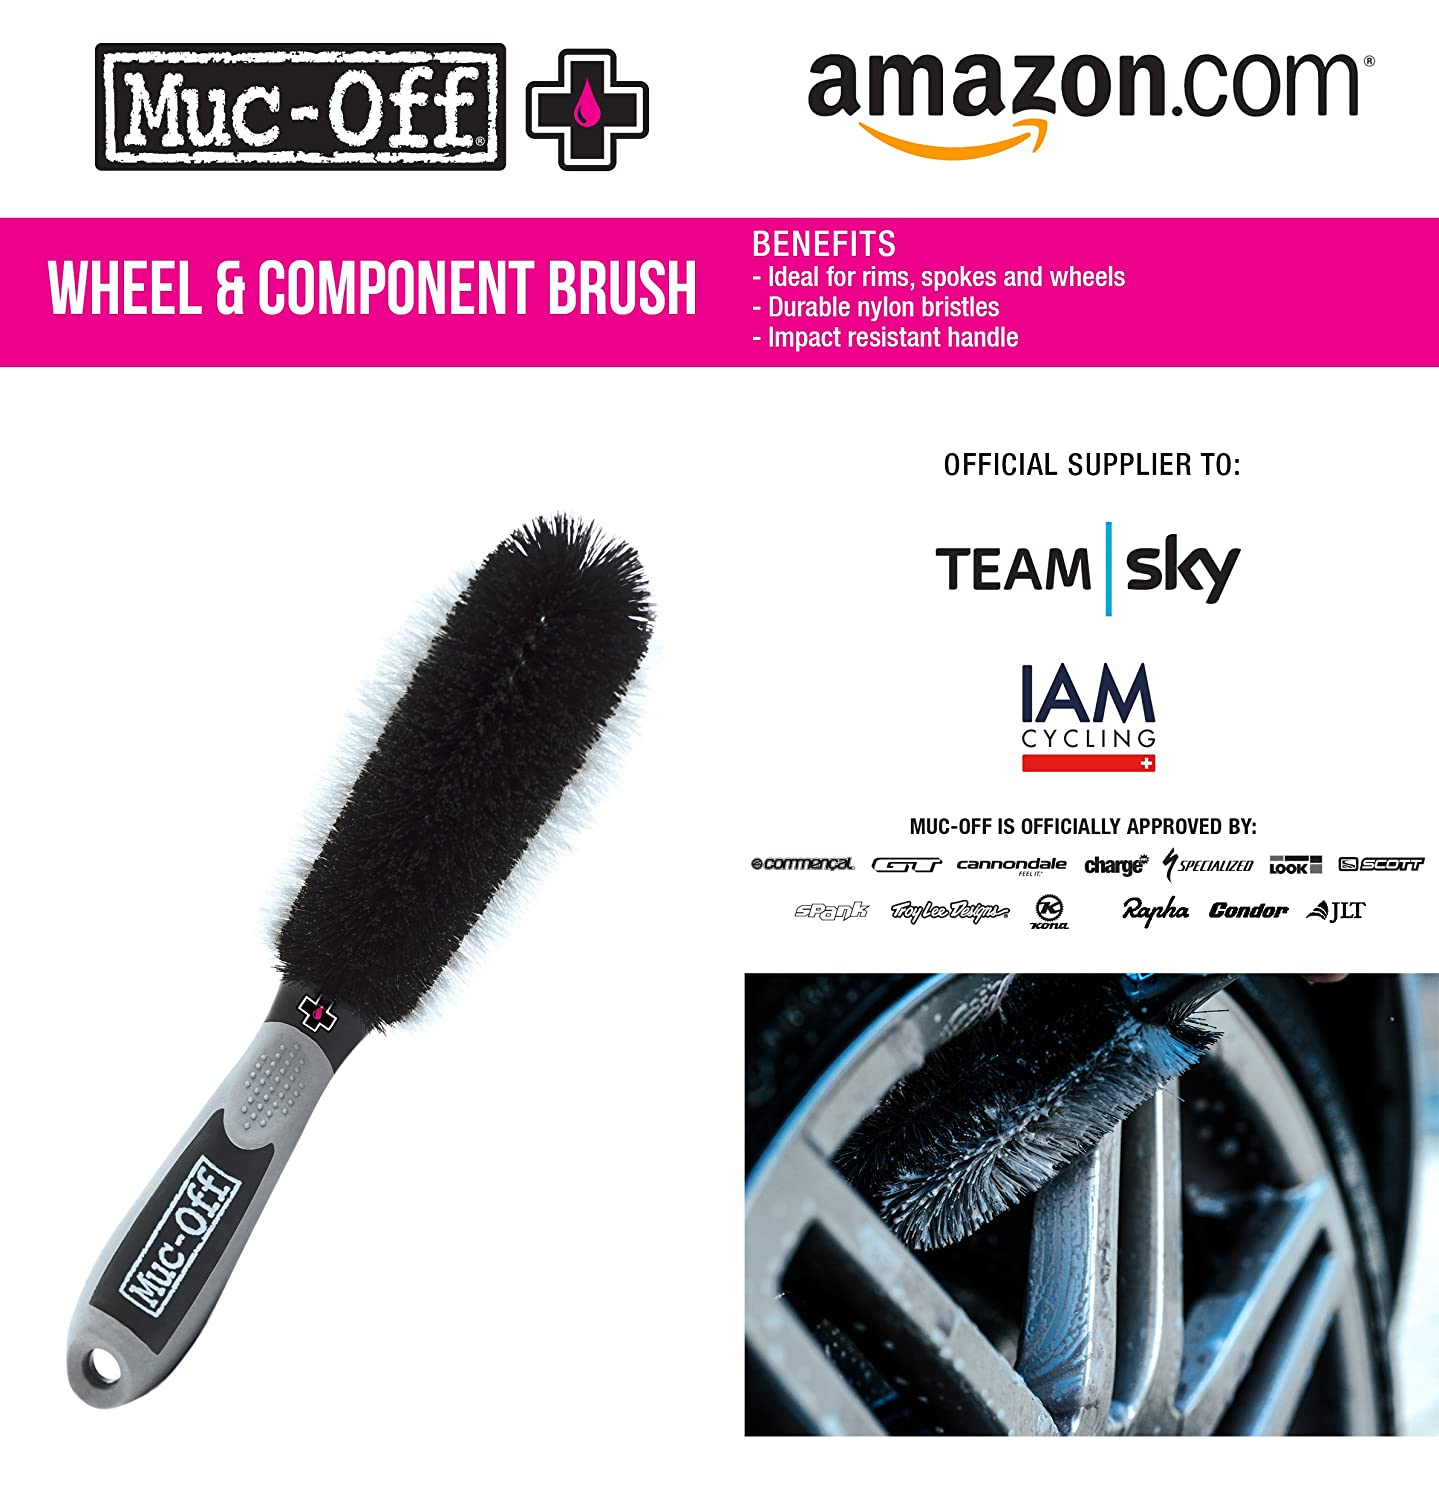 Muc-Off 371 Wheel and Component Brush